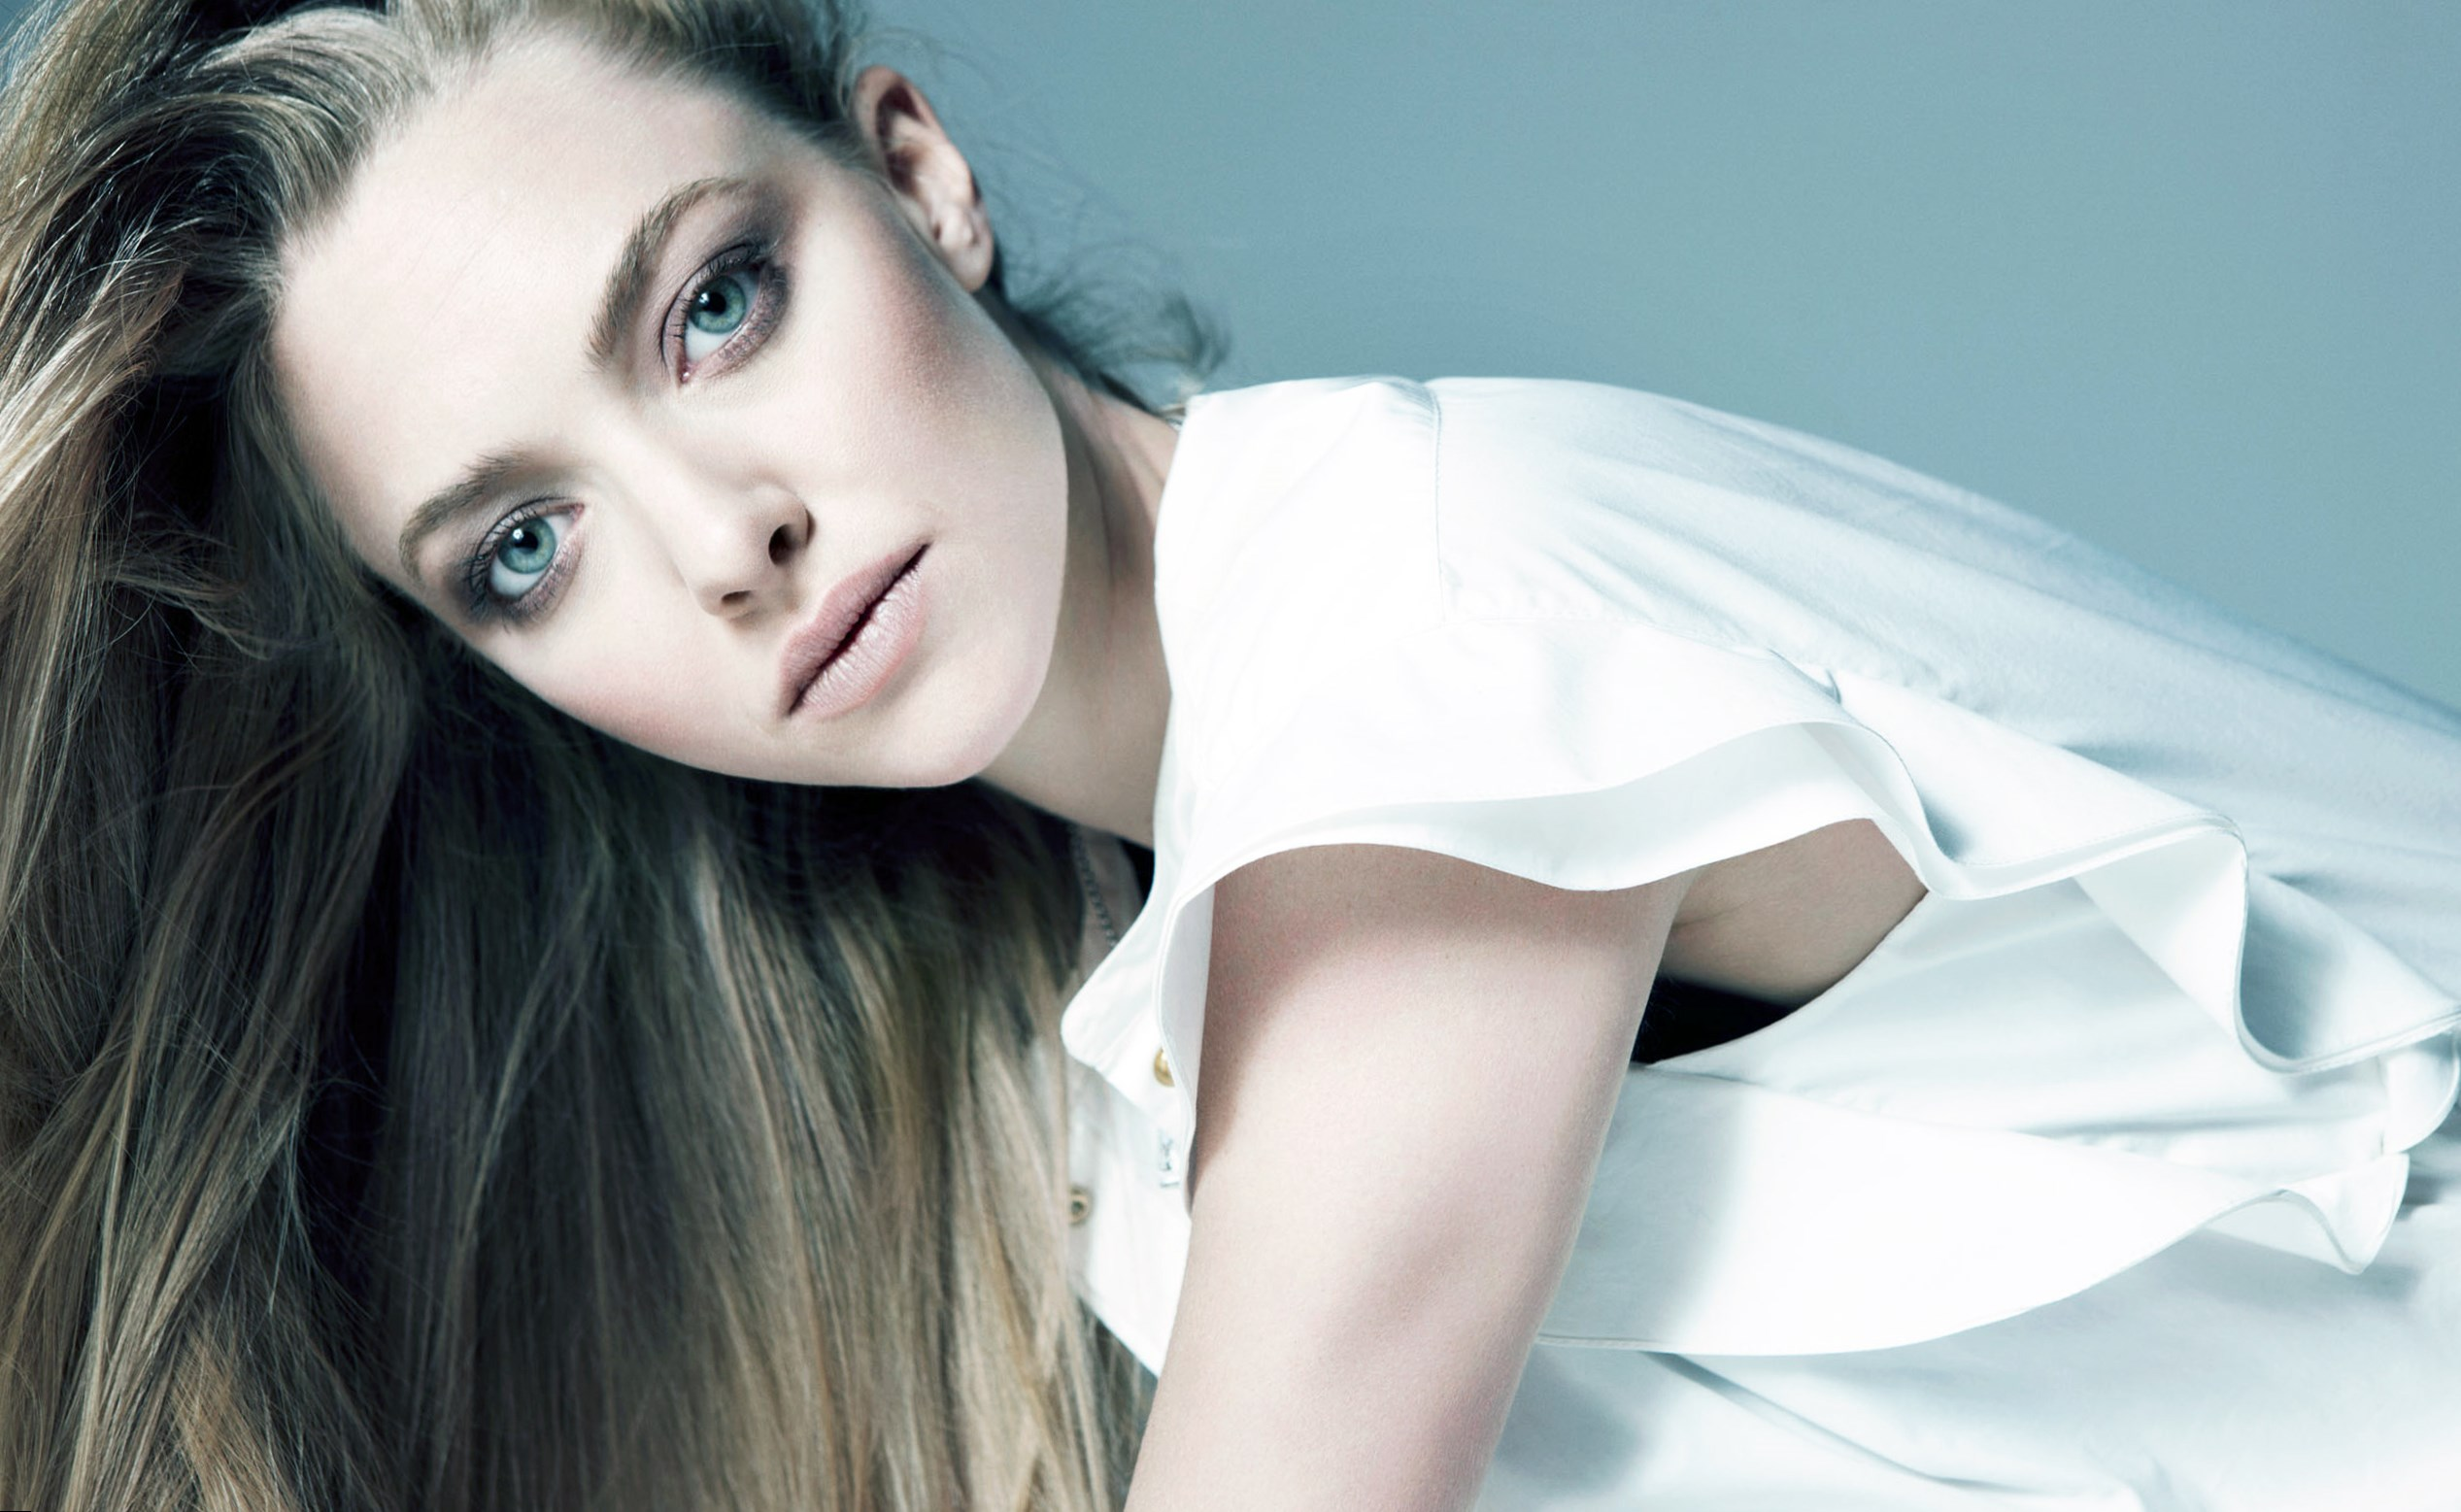 Amanda Seyfried - Height, Weight and Body Measurements